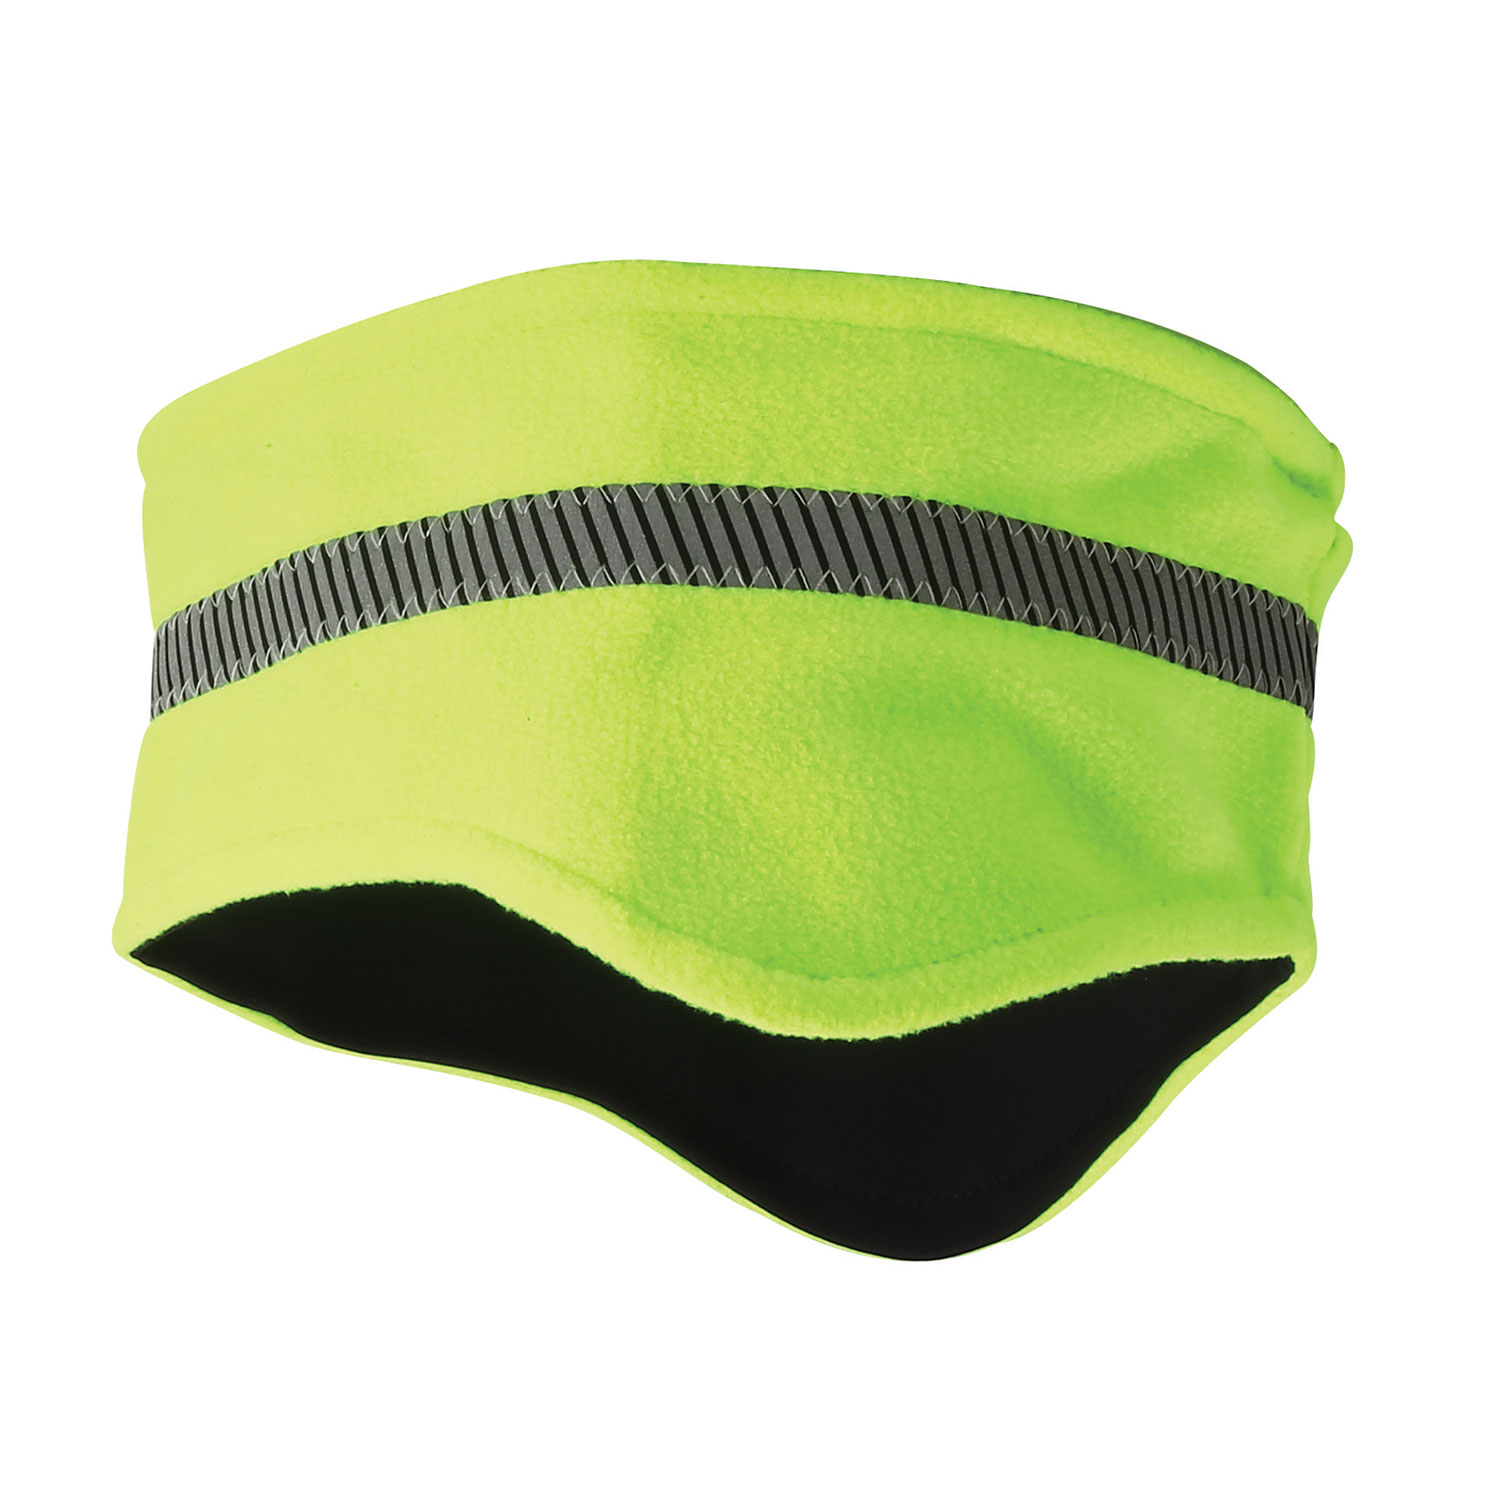 Galls Hi-Viz Reflective Fleece Stretch Headband